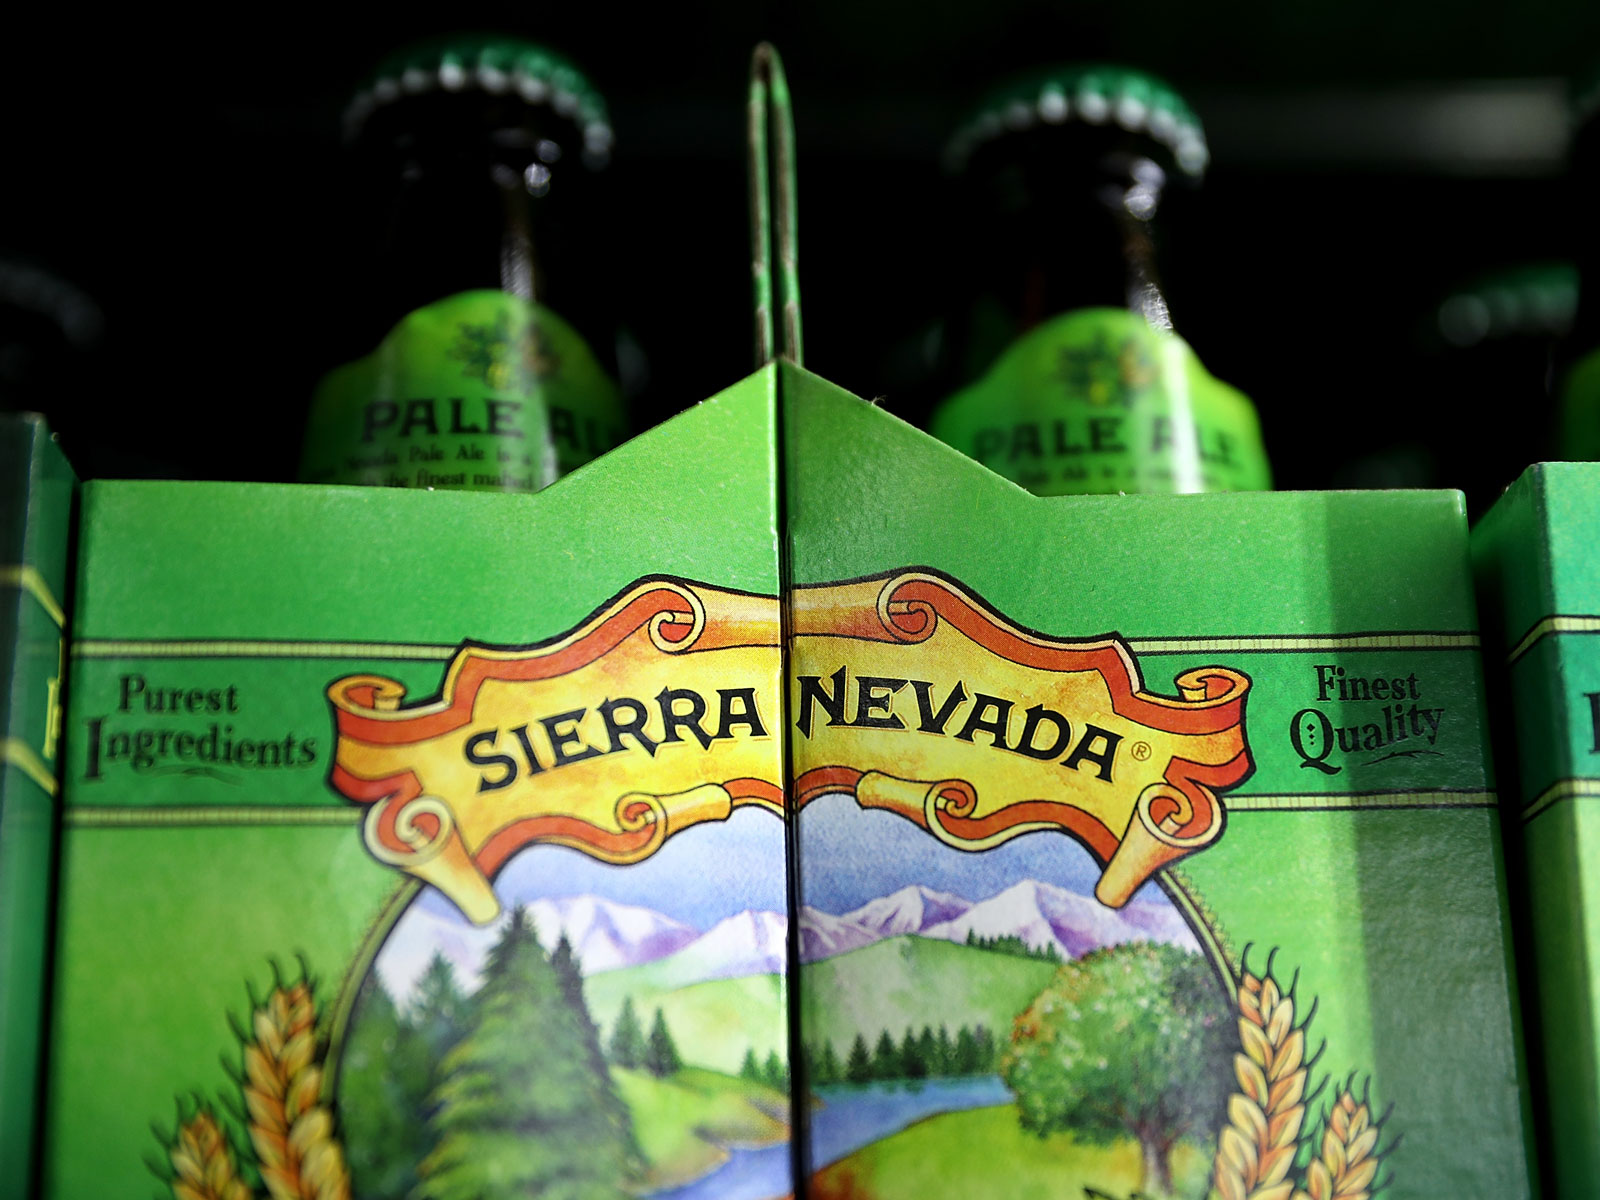 Sierra Nevada Brewing Launches Camp Fire Relief Fund with $100,000 Initial Donation